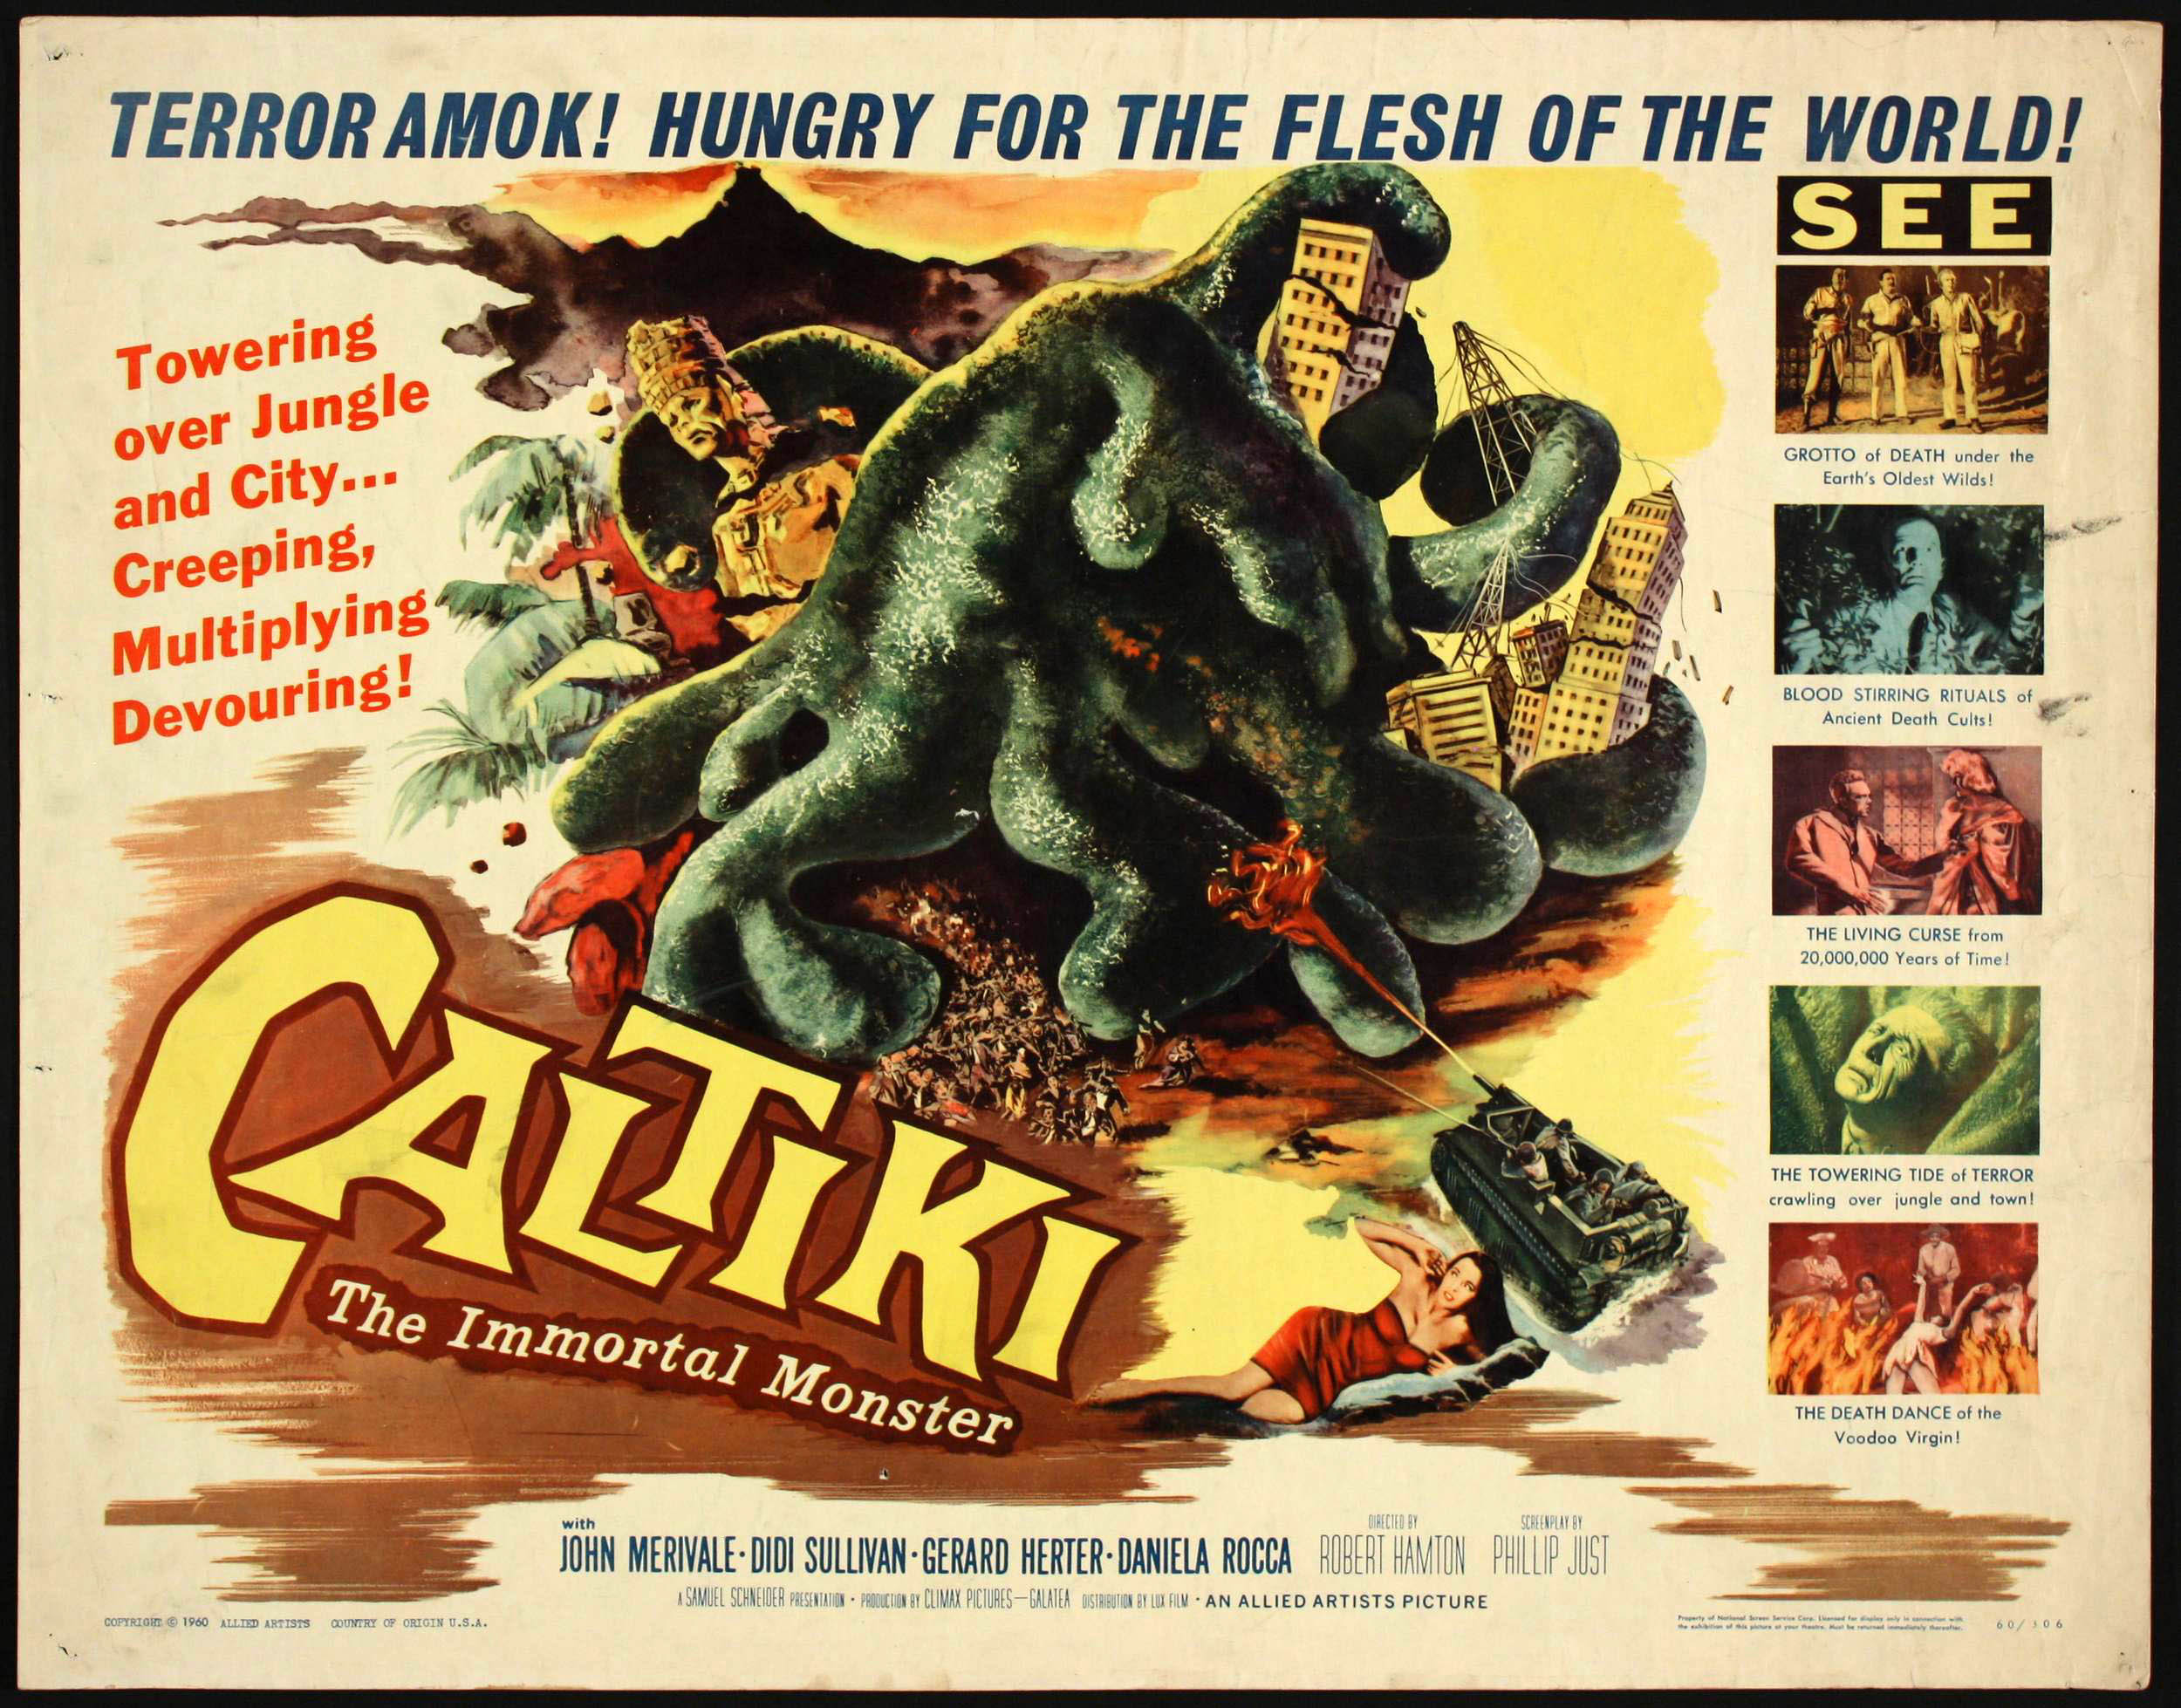 Caltiki, the Immortal Monster (1960)